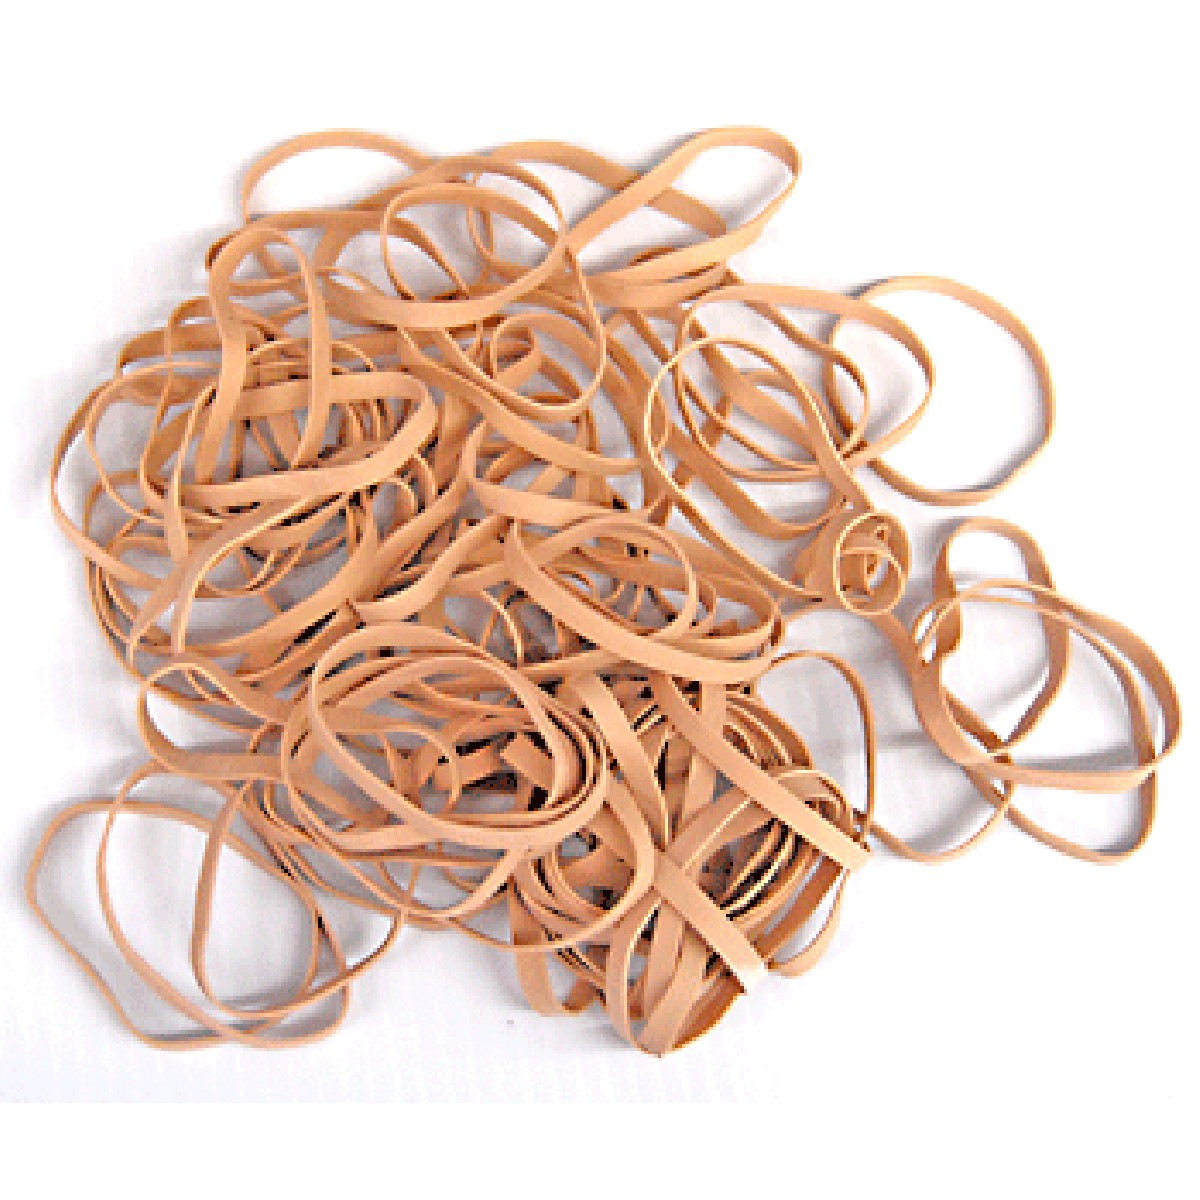 RUBBER BANDS 100MMX9.0MM NATURAL